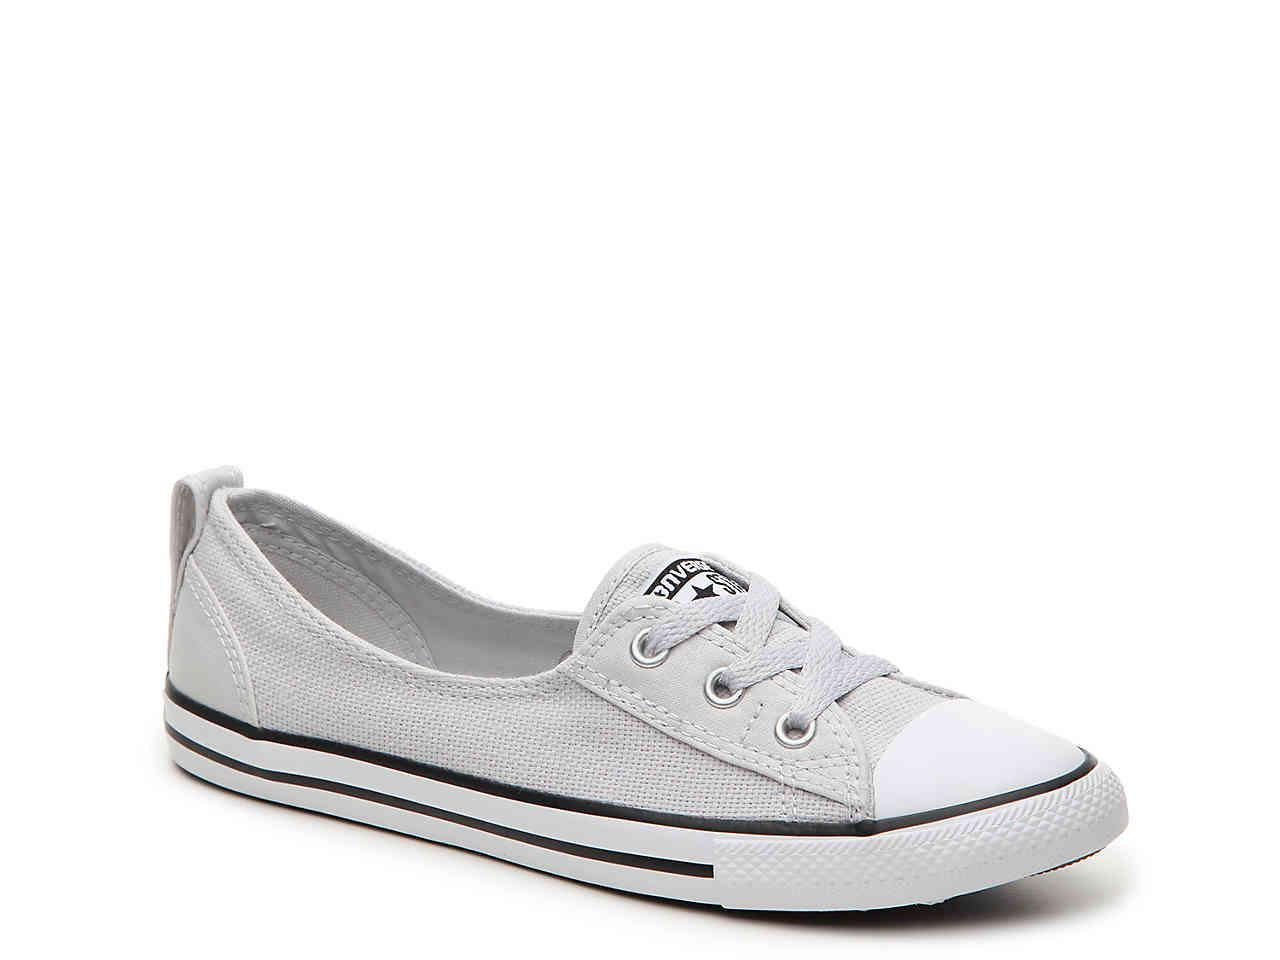 3ad8d41ee090 Lyst - Converse Chuck Taylor All Star Dainty Ballet Slip-on Sneaker ...